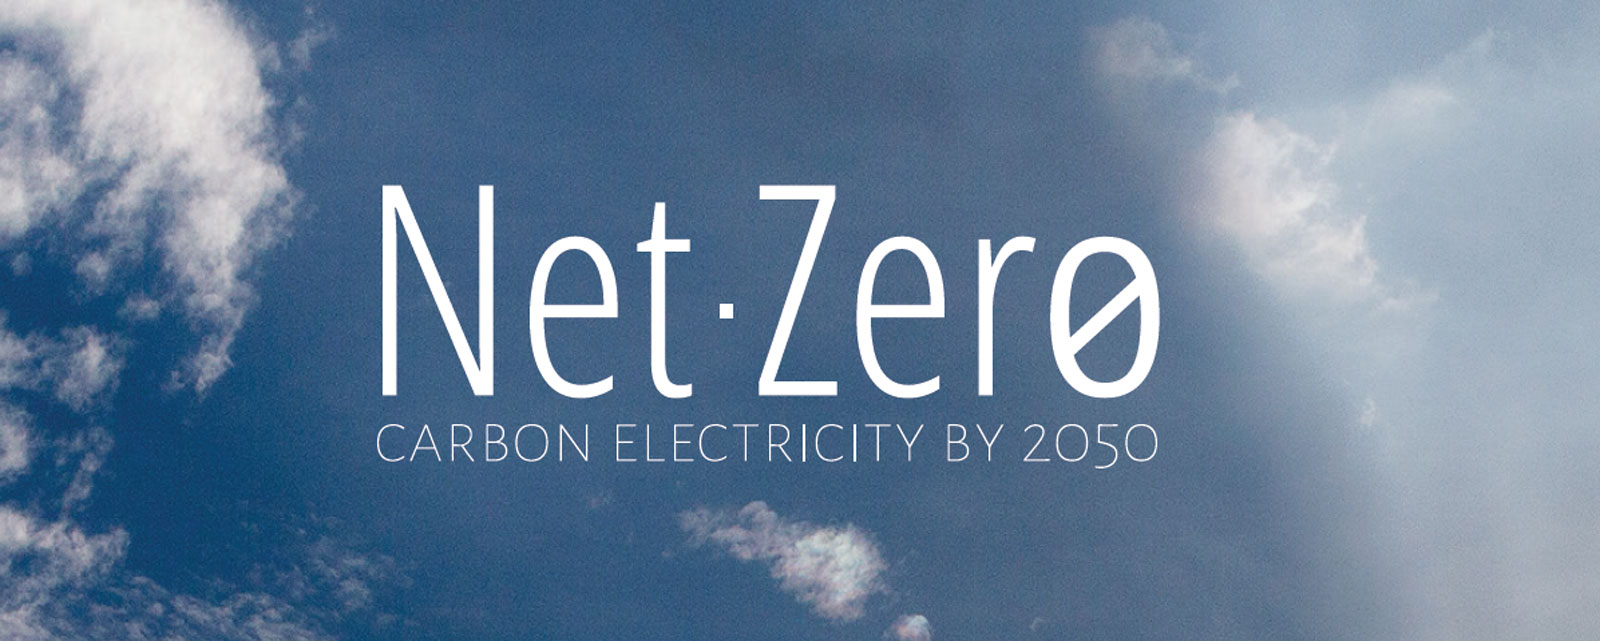 Net Zero Carbon Electricity by 2050